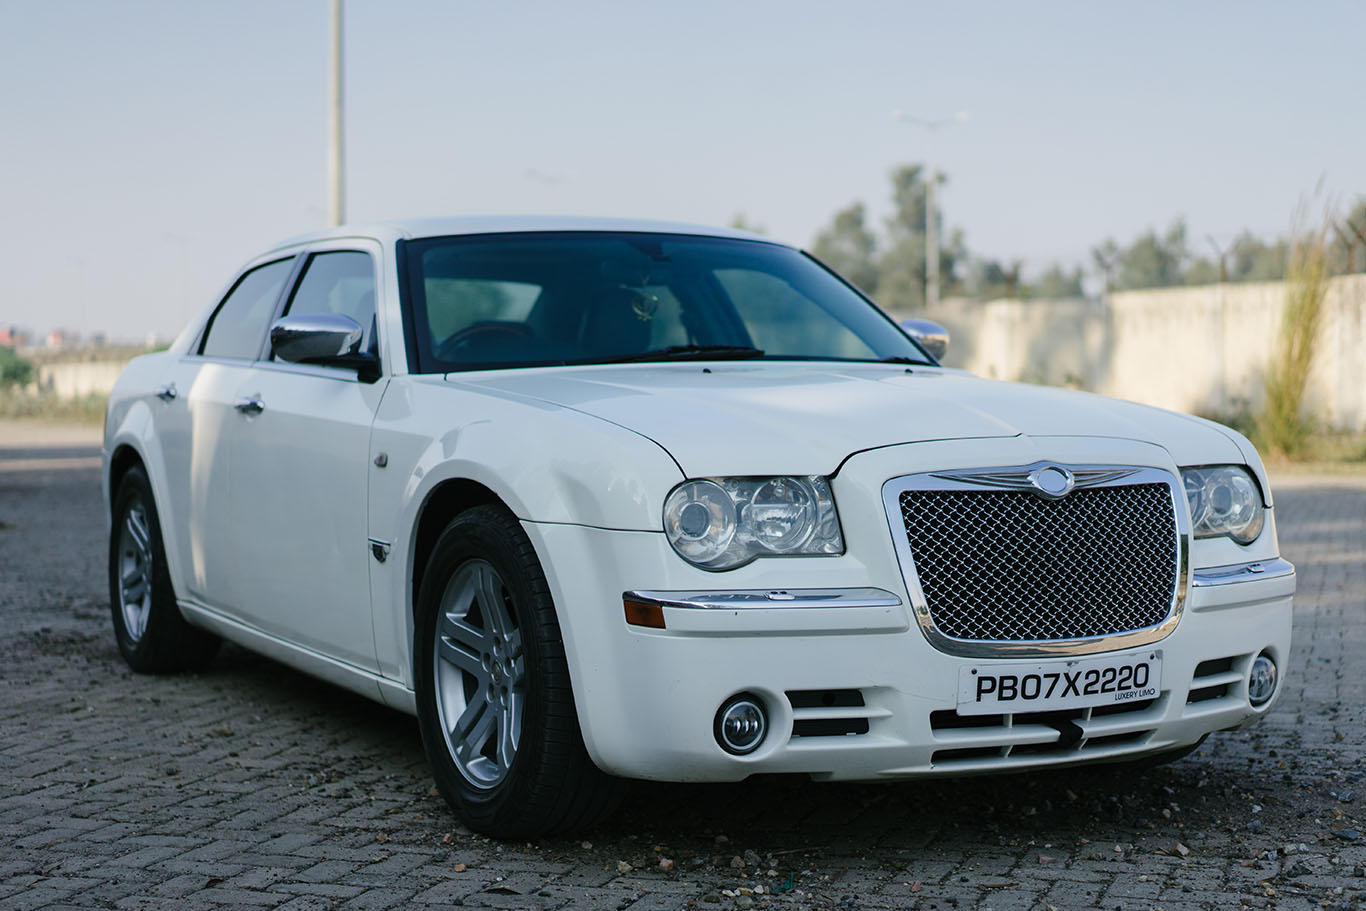 Chrysler 300 - the grand vehicle!!